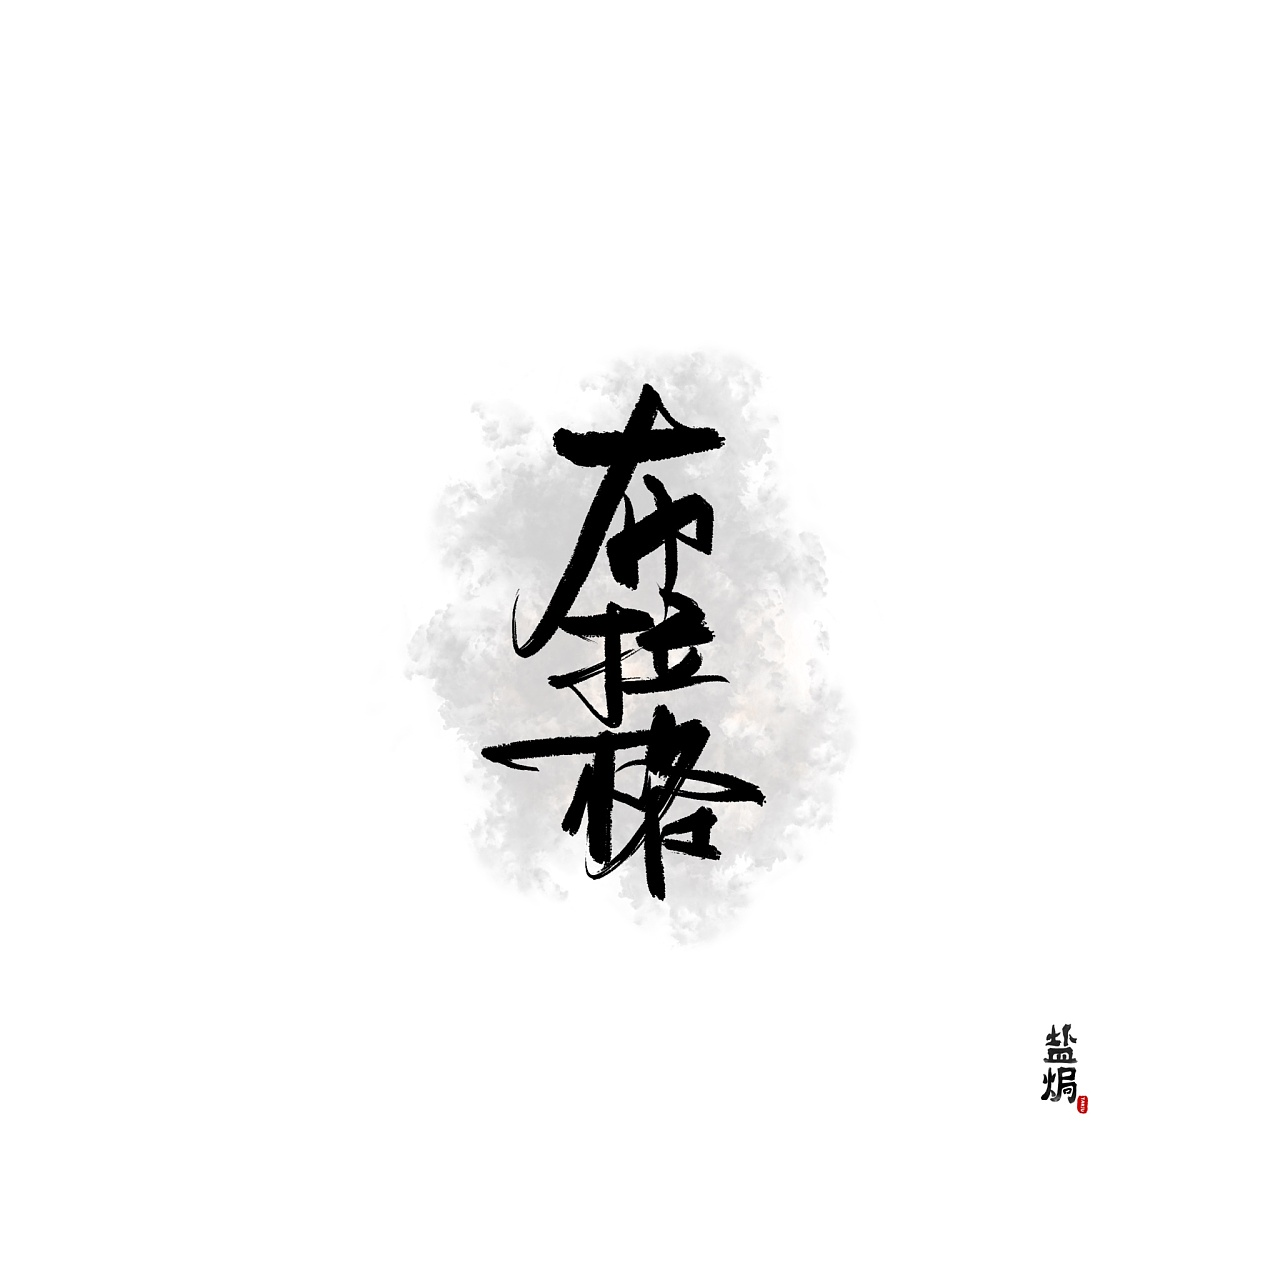 9P Chinese traditional calligraphy brush calligraphy font style appreciation #.550